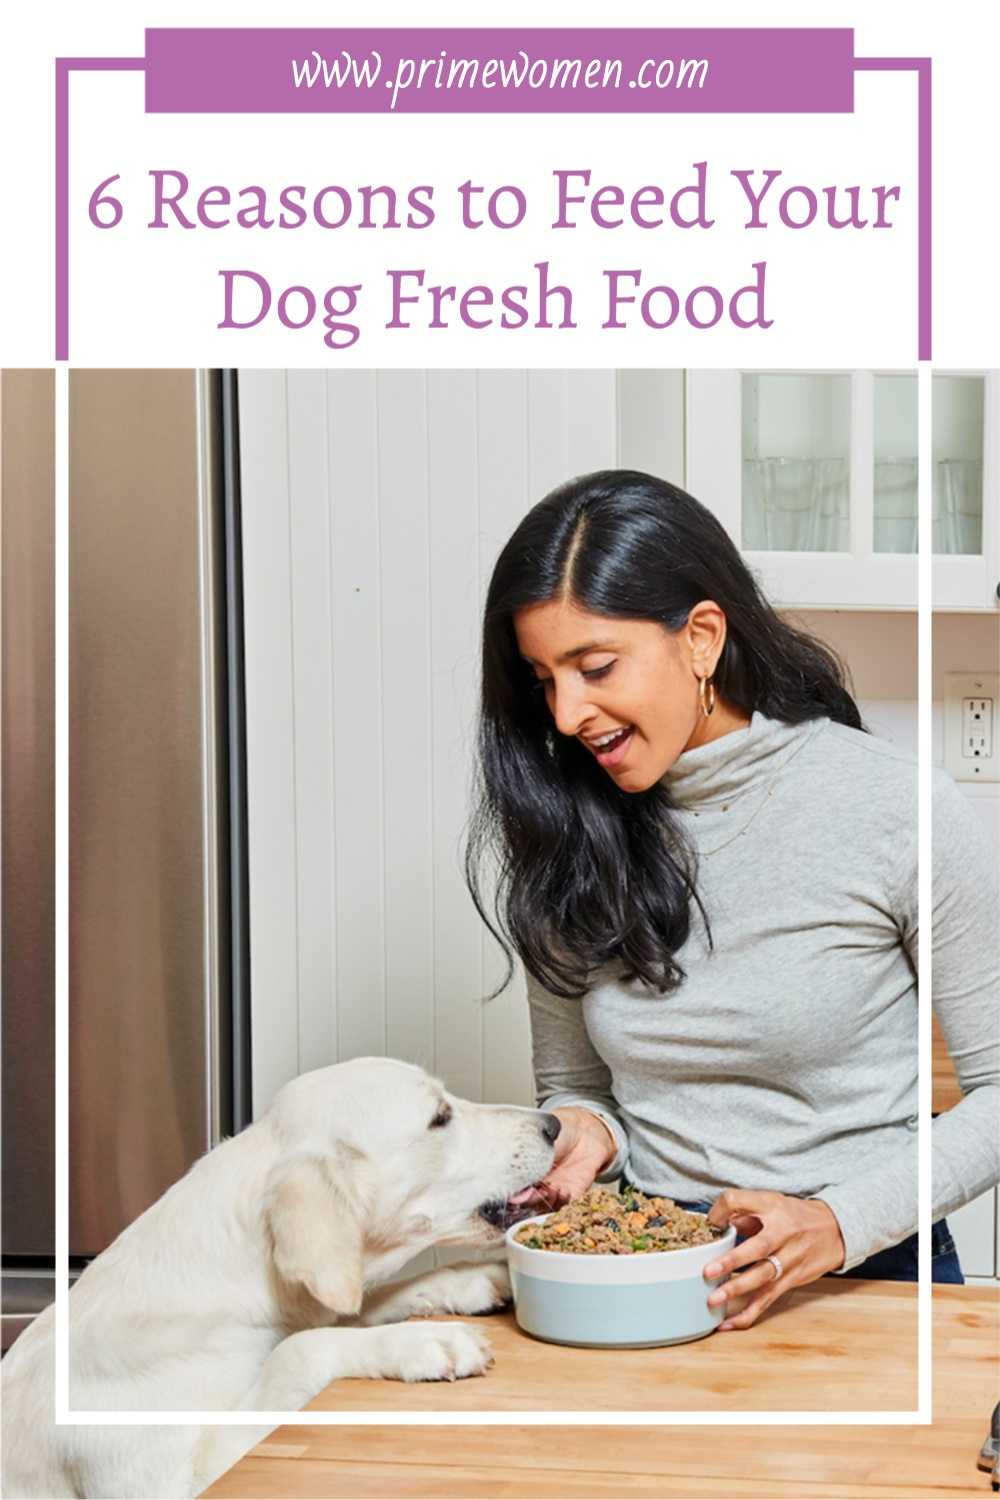 6-Reasons-to-Feed-Your-Dog-Fresh-Food